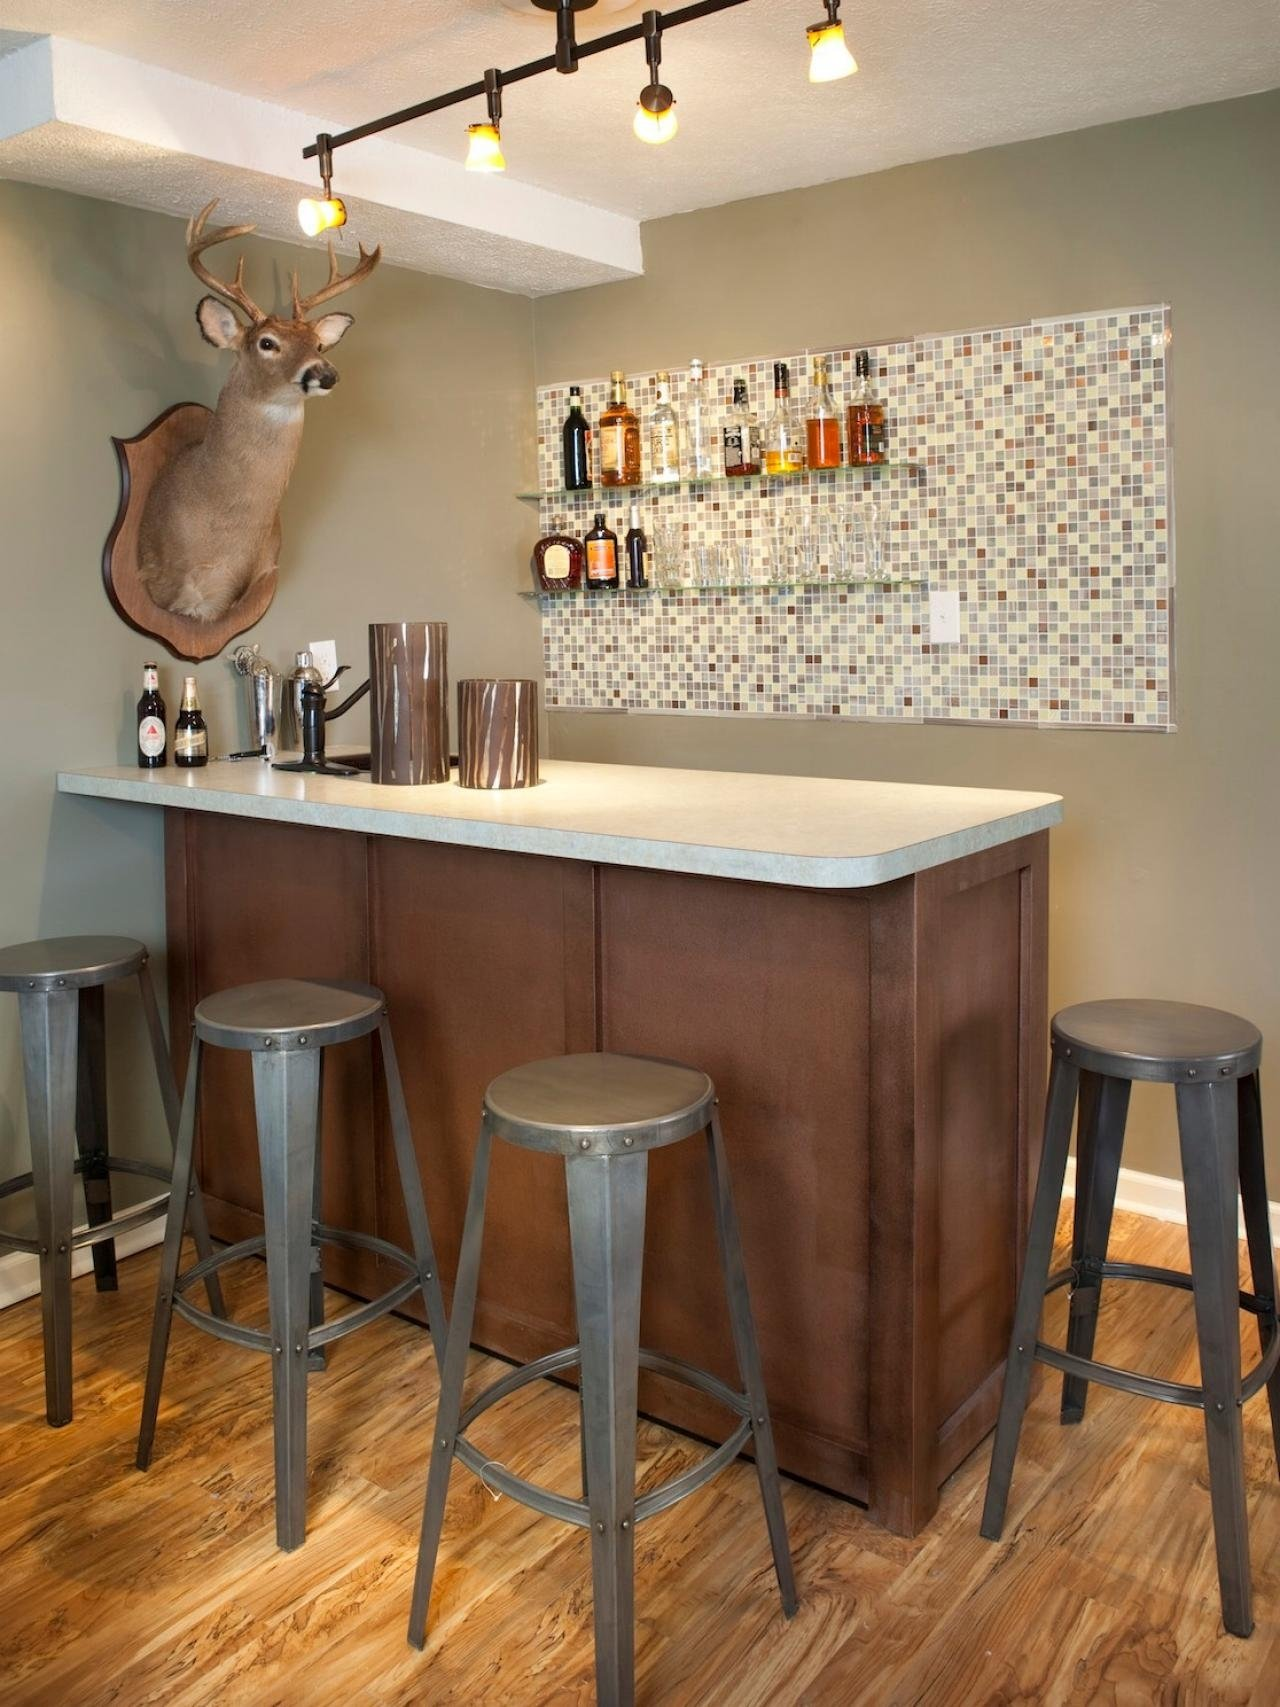 10 Elegant Basement Bar Ideas For Small Spaces big small basement bar ideas www almosthomedogdaycare basement 2020